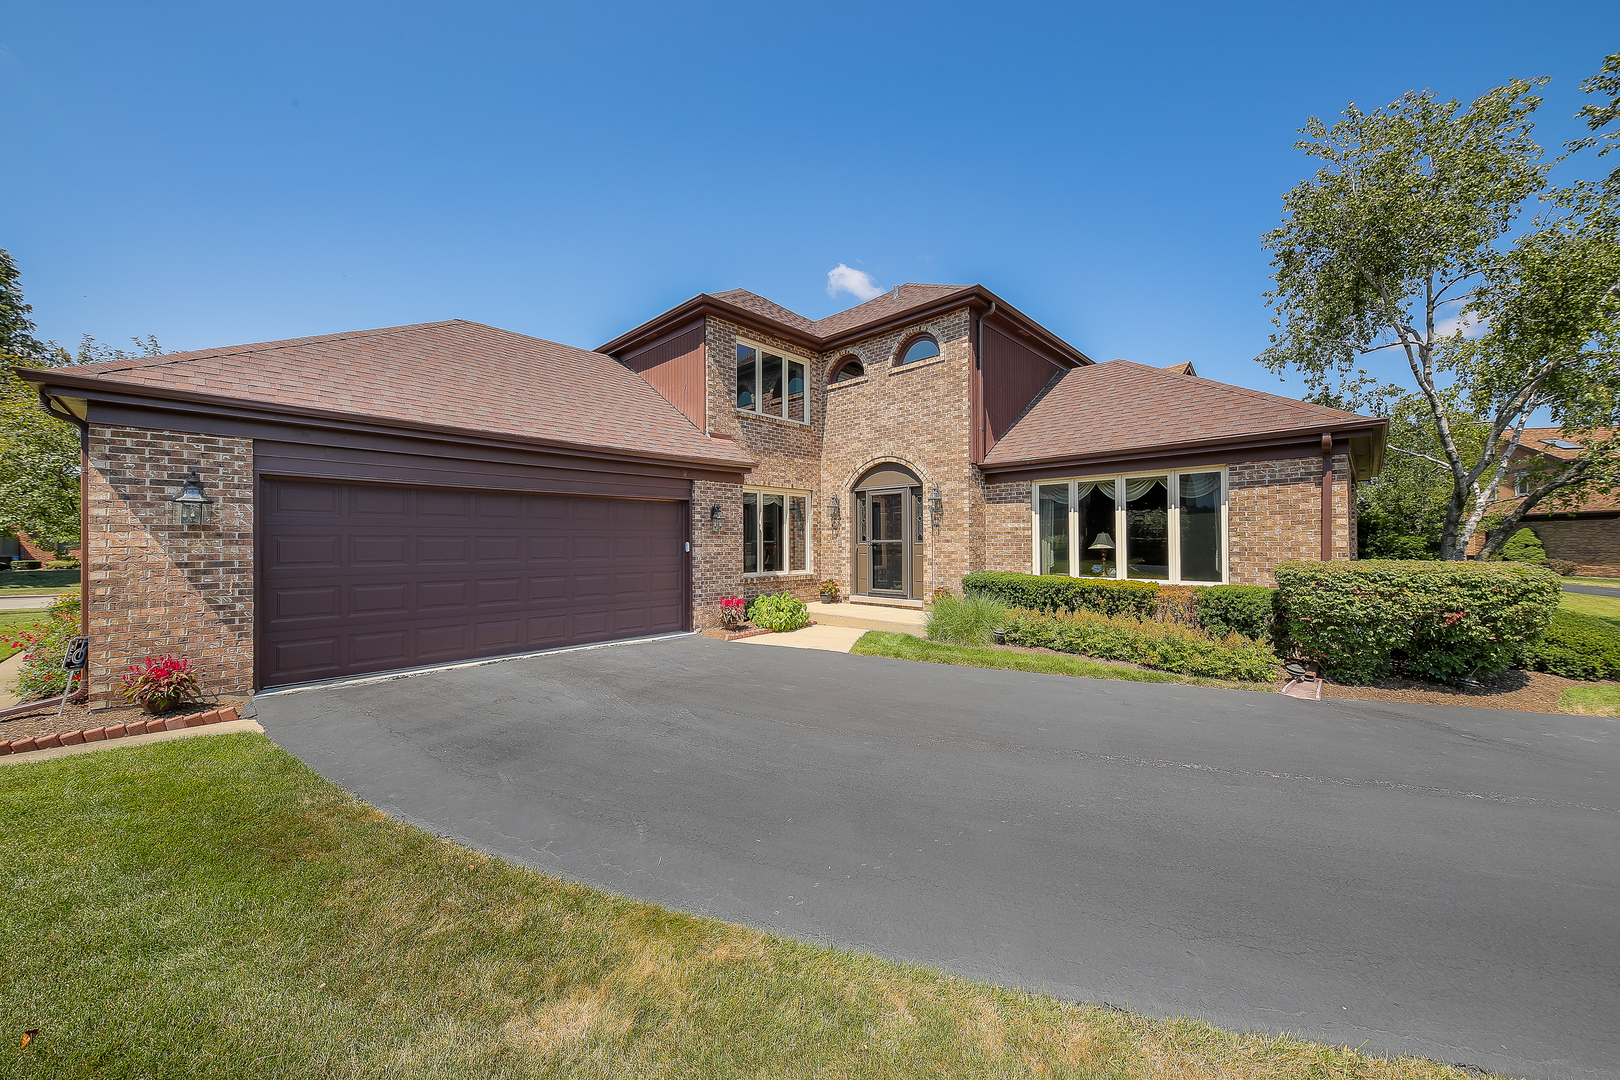 2409 Greshan ,Arlington Heights, Illinois 60004